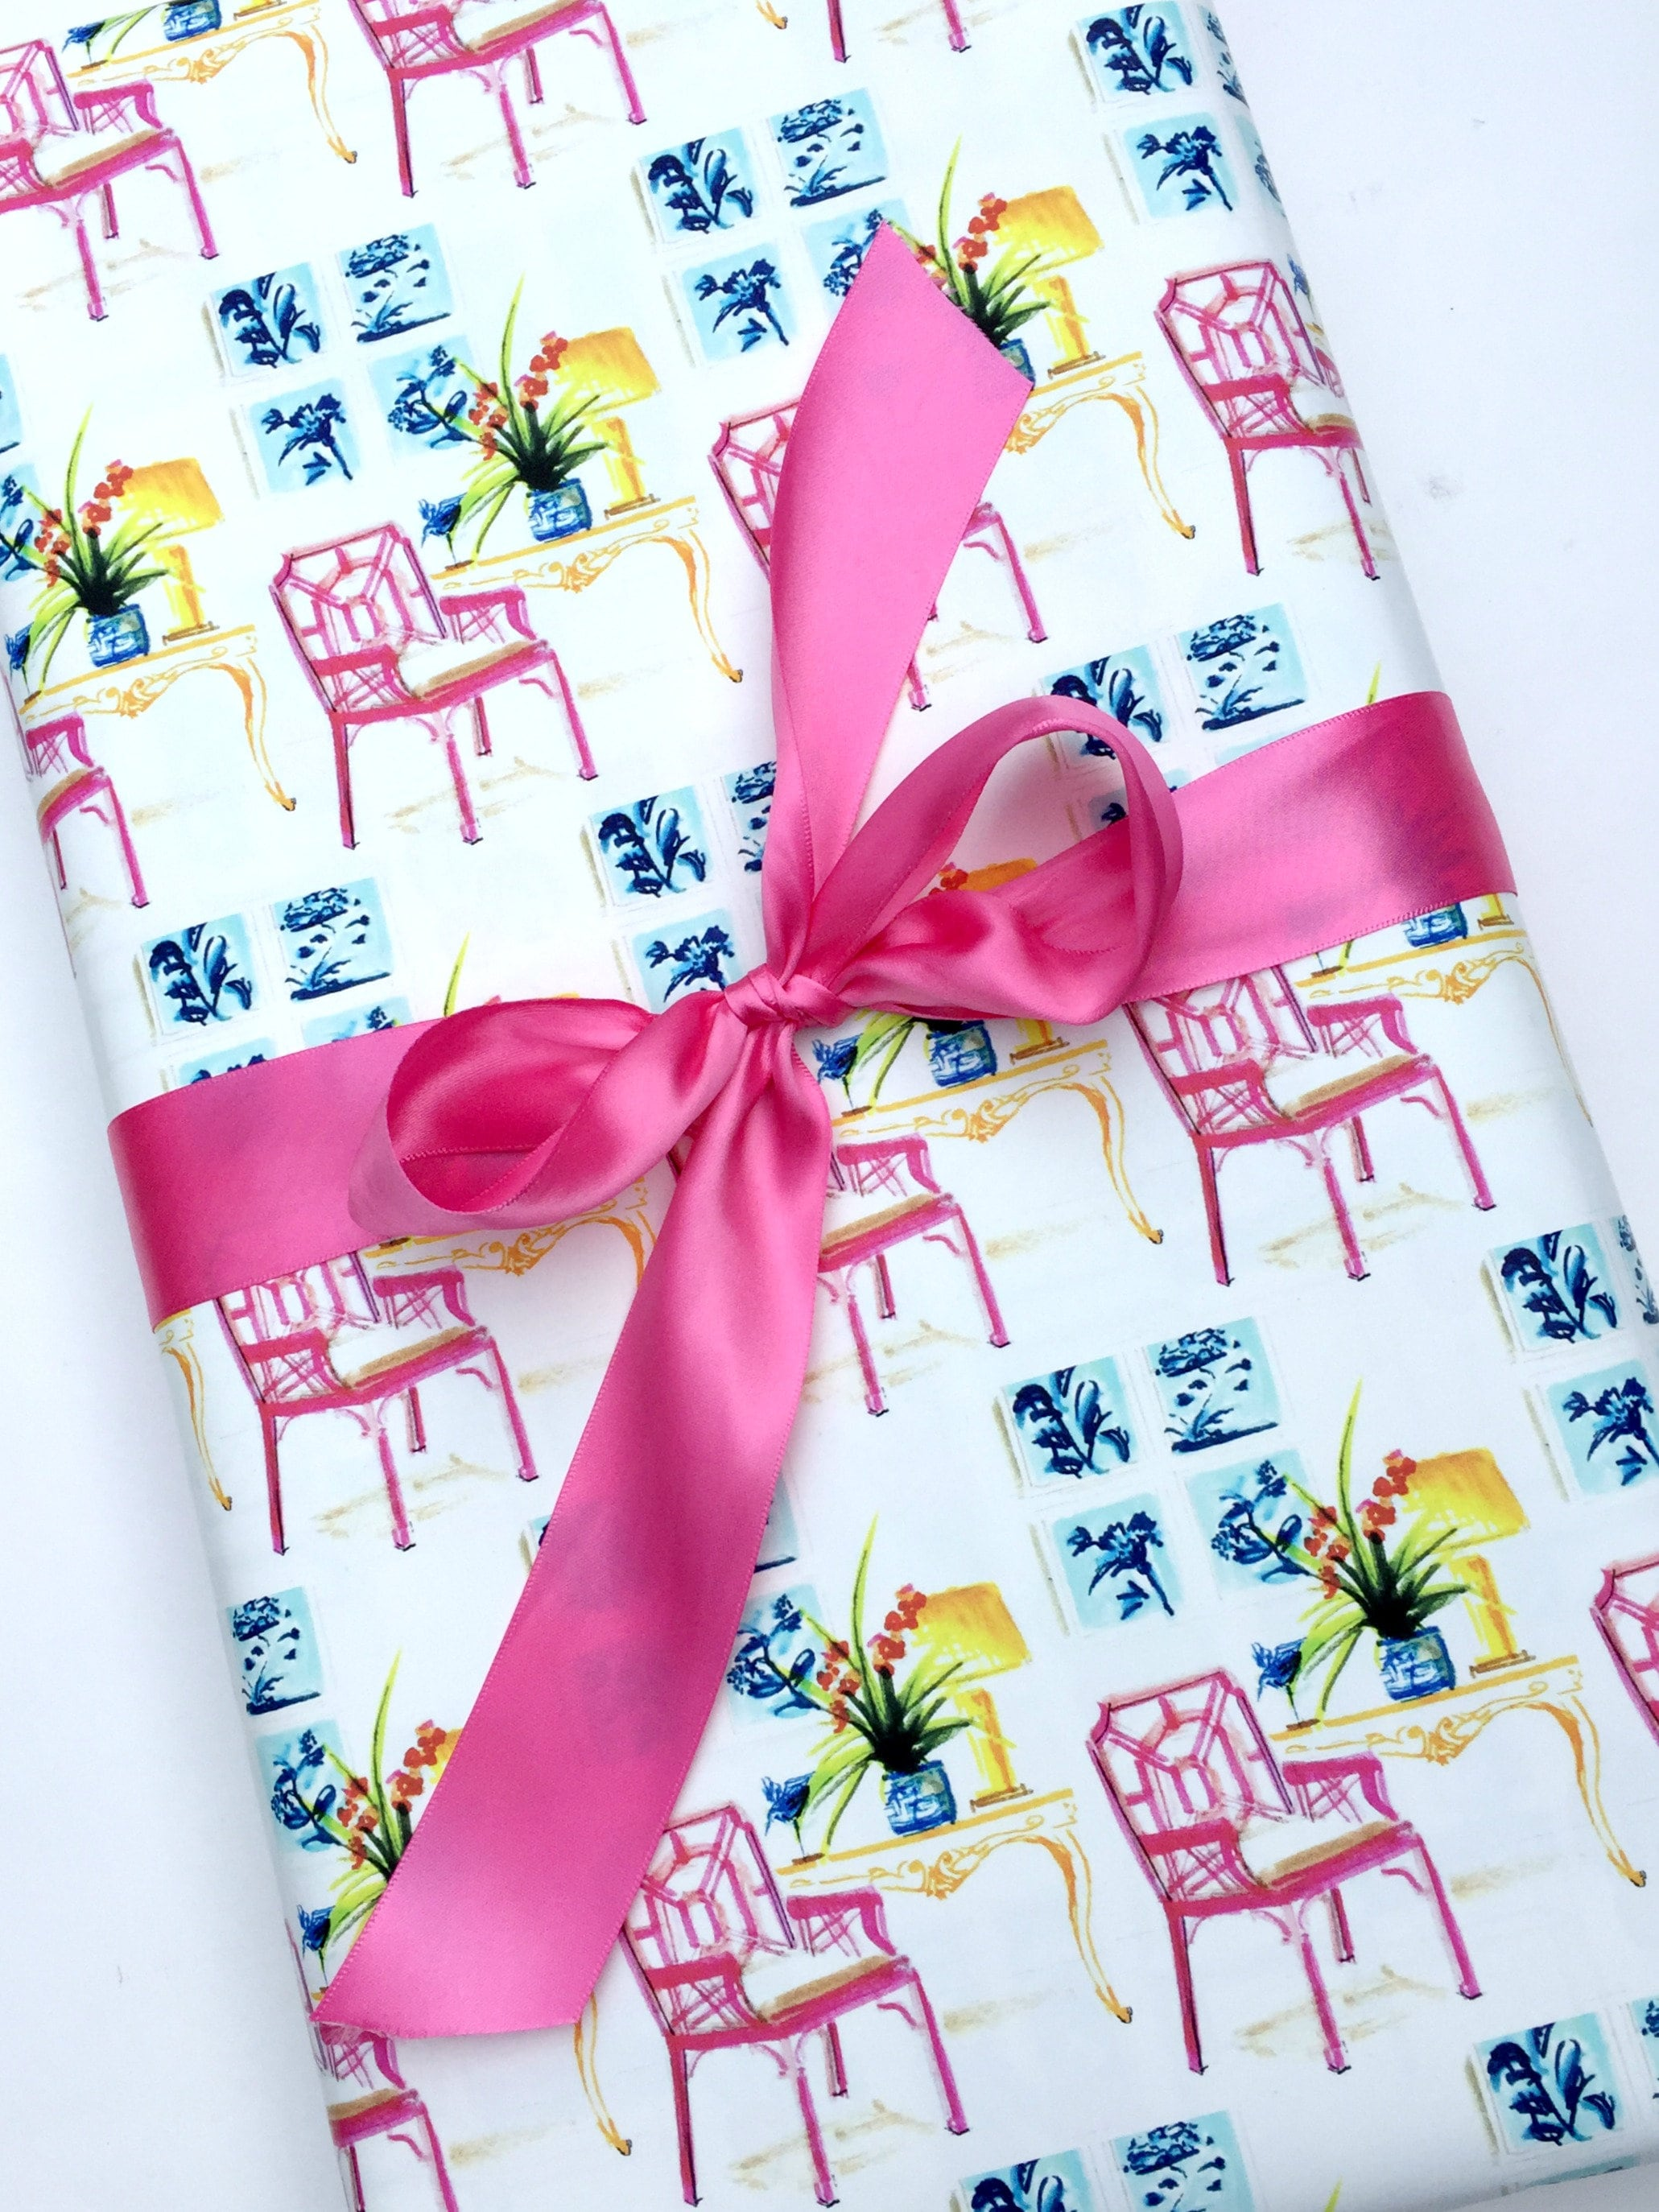 lilly pulitzer chair target rocking wrapping paper roll gift wrap pink